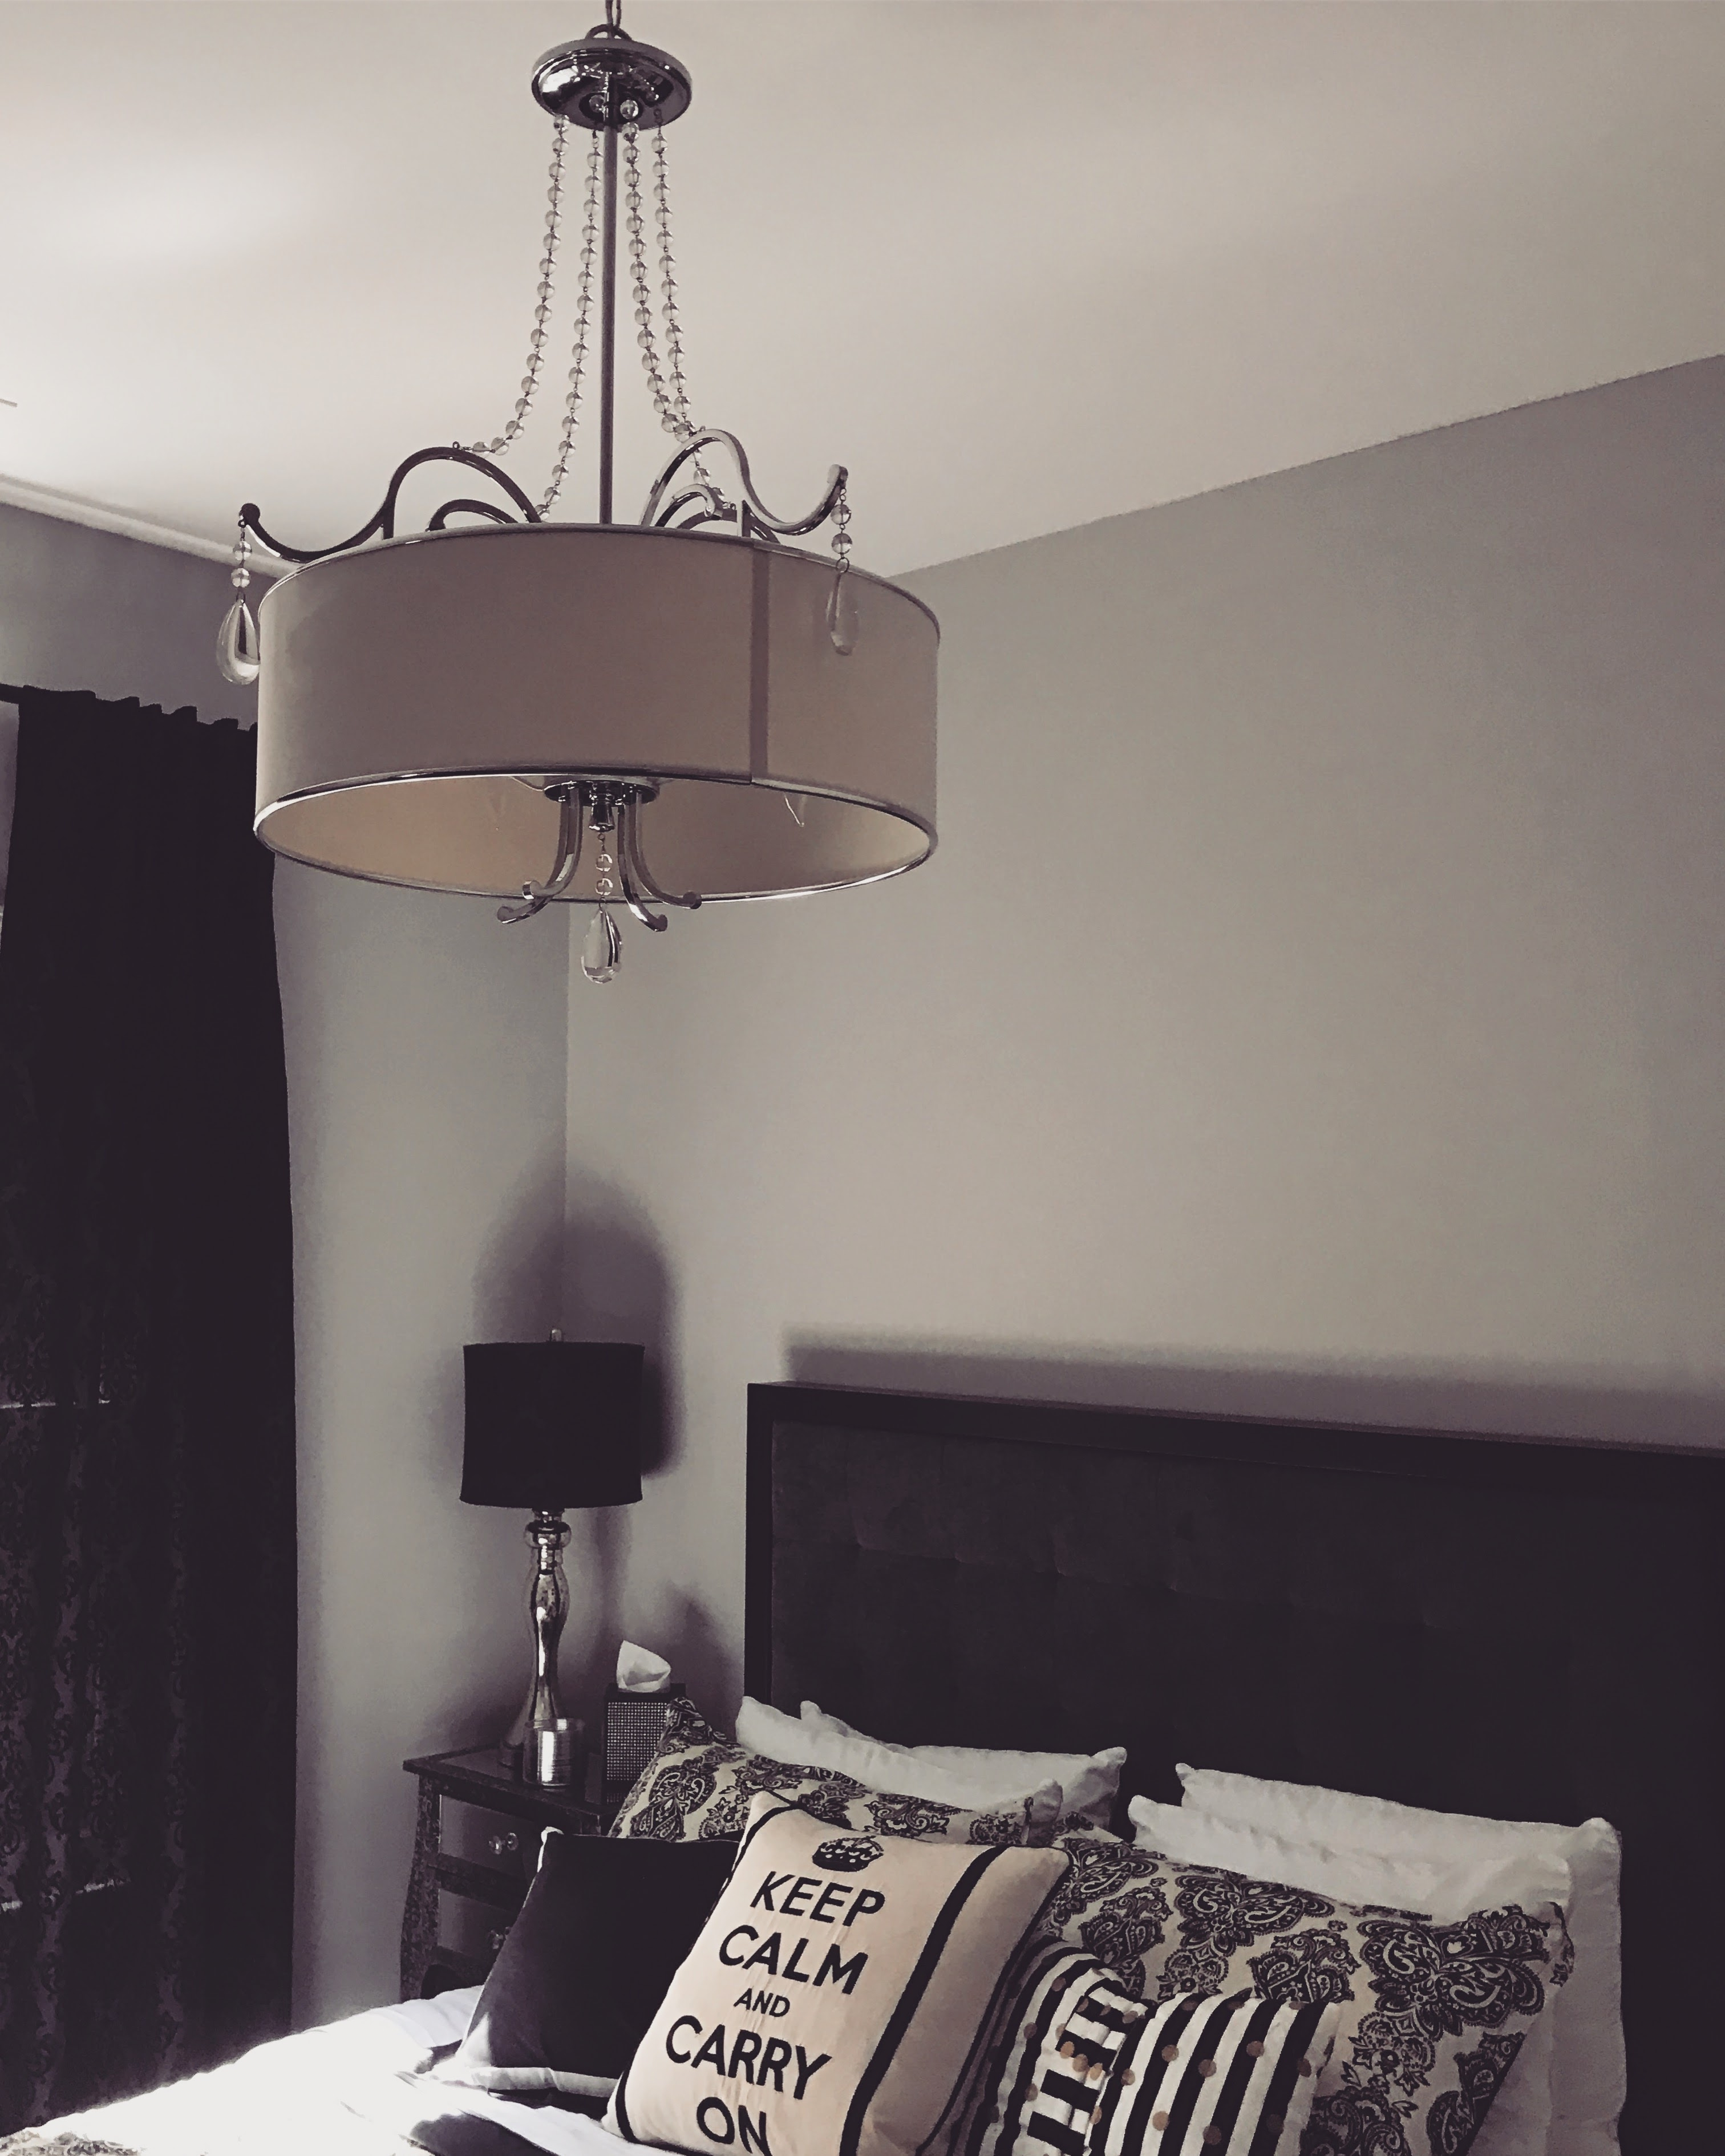 I Snagged This Crystal Drum Chandelier A Few Years Back At (of All Places!)  Costco. Iu0027m Thinking About Painting The Shade Blacku2026 What Do You Think?